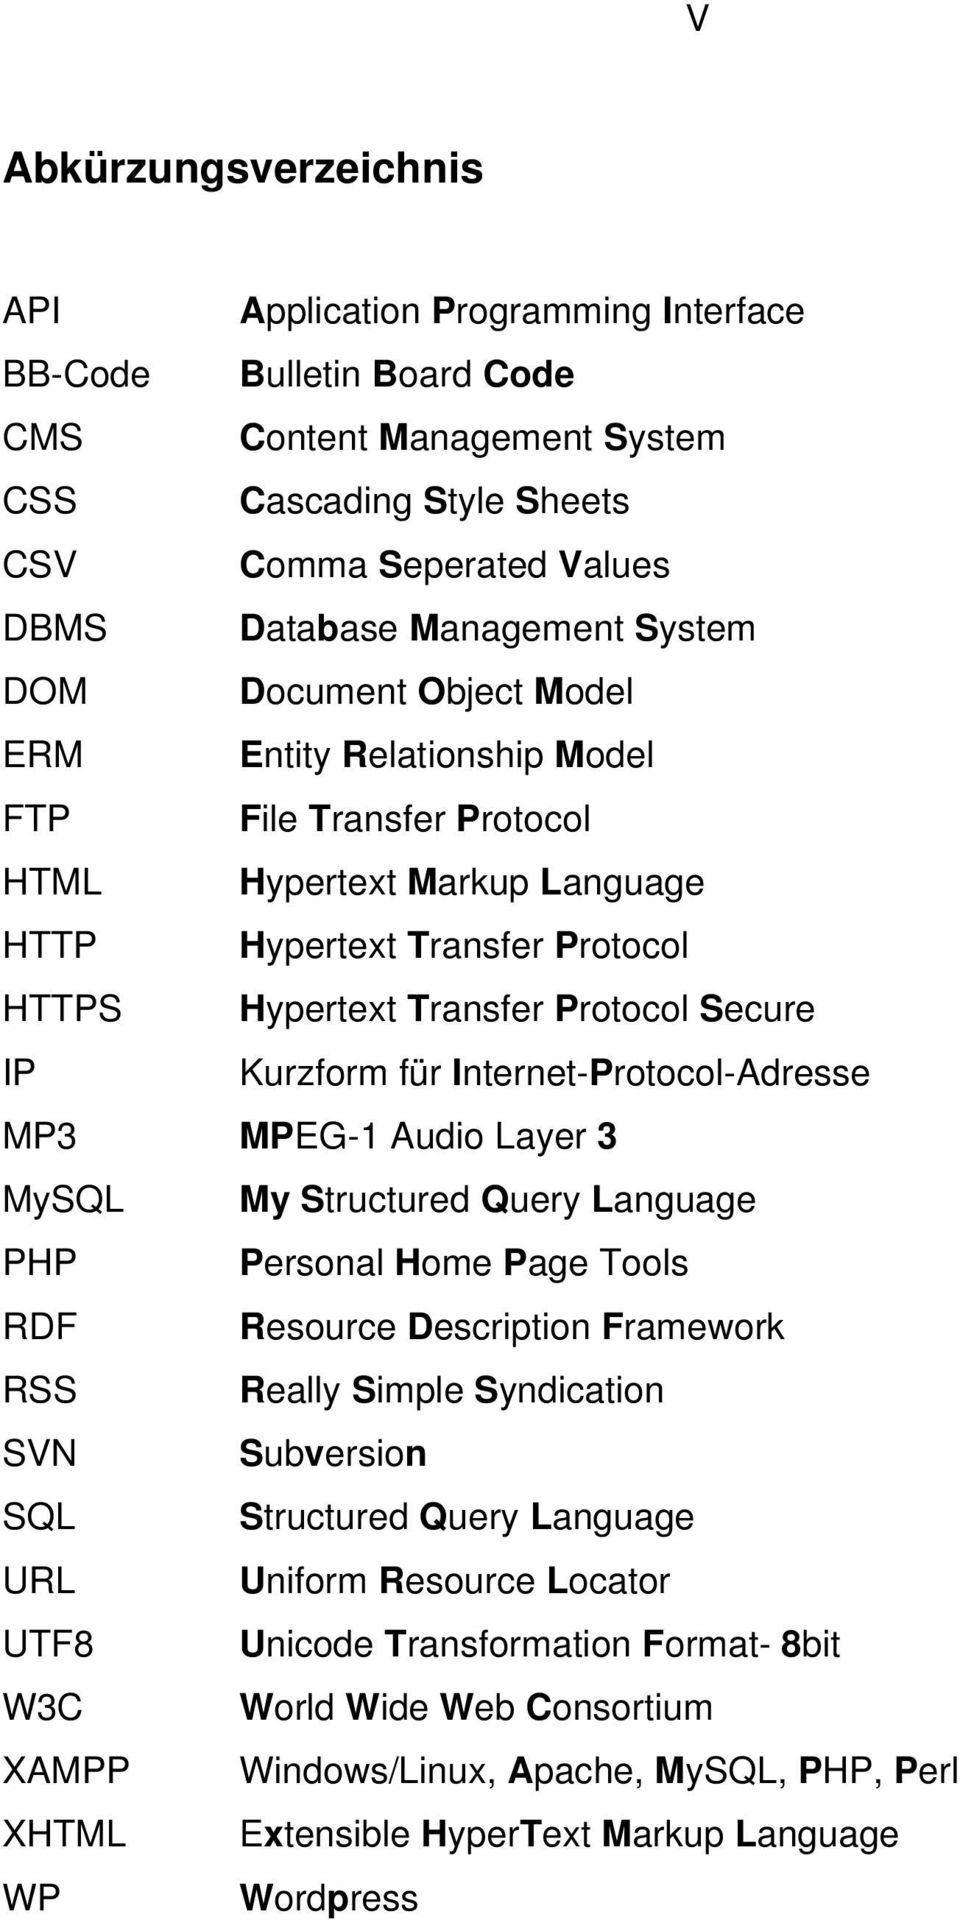 Kurzform für Internet-Protocol-Adresse MP3 MPEG-1 Audio Layer 3 MySQL My Structured Query Language PHP Personal Home Page Tools RDF Resource Description Framework RSS Really Simple Syndication SVN